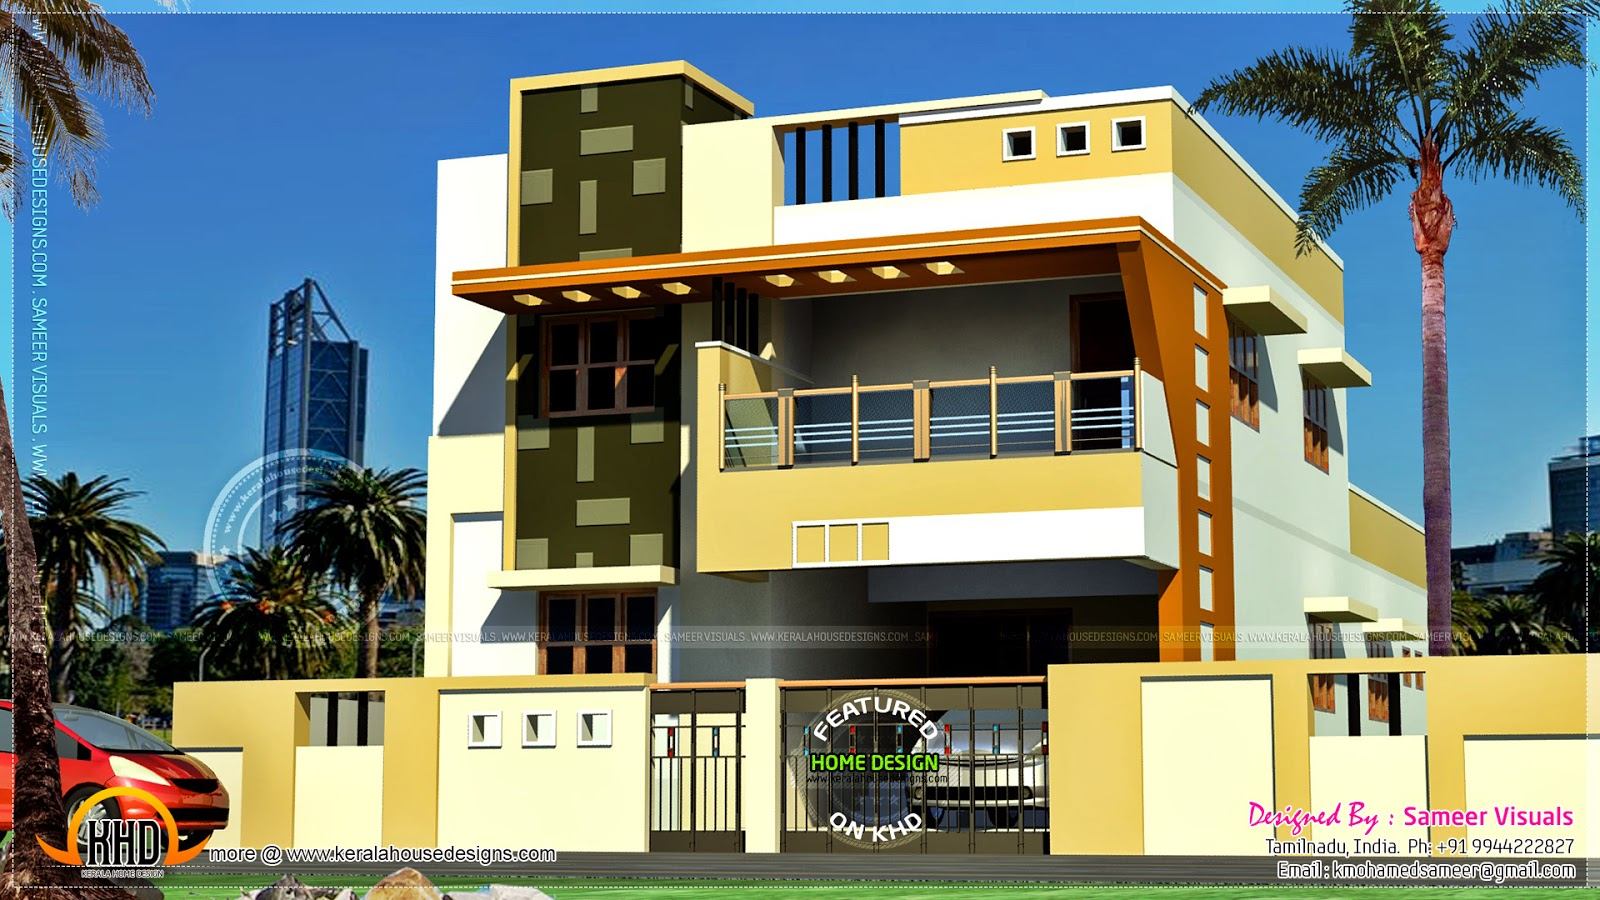 Modern south indian house design kerala home design and for Home architecture design india